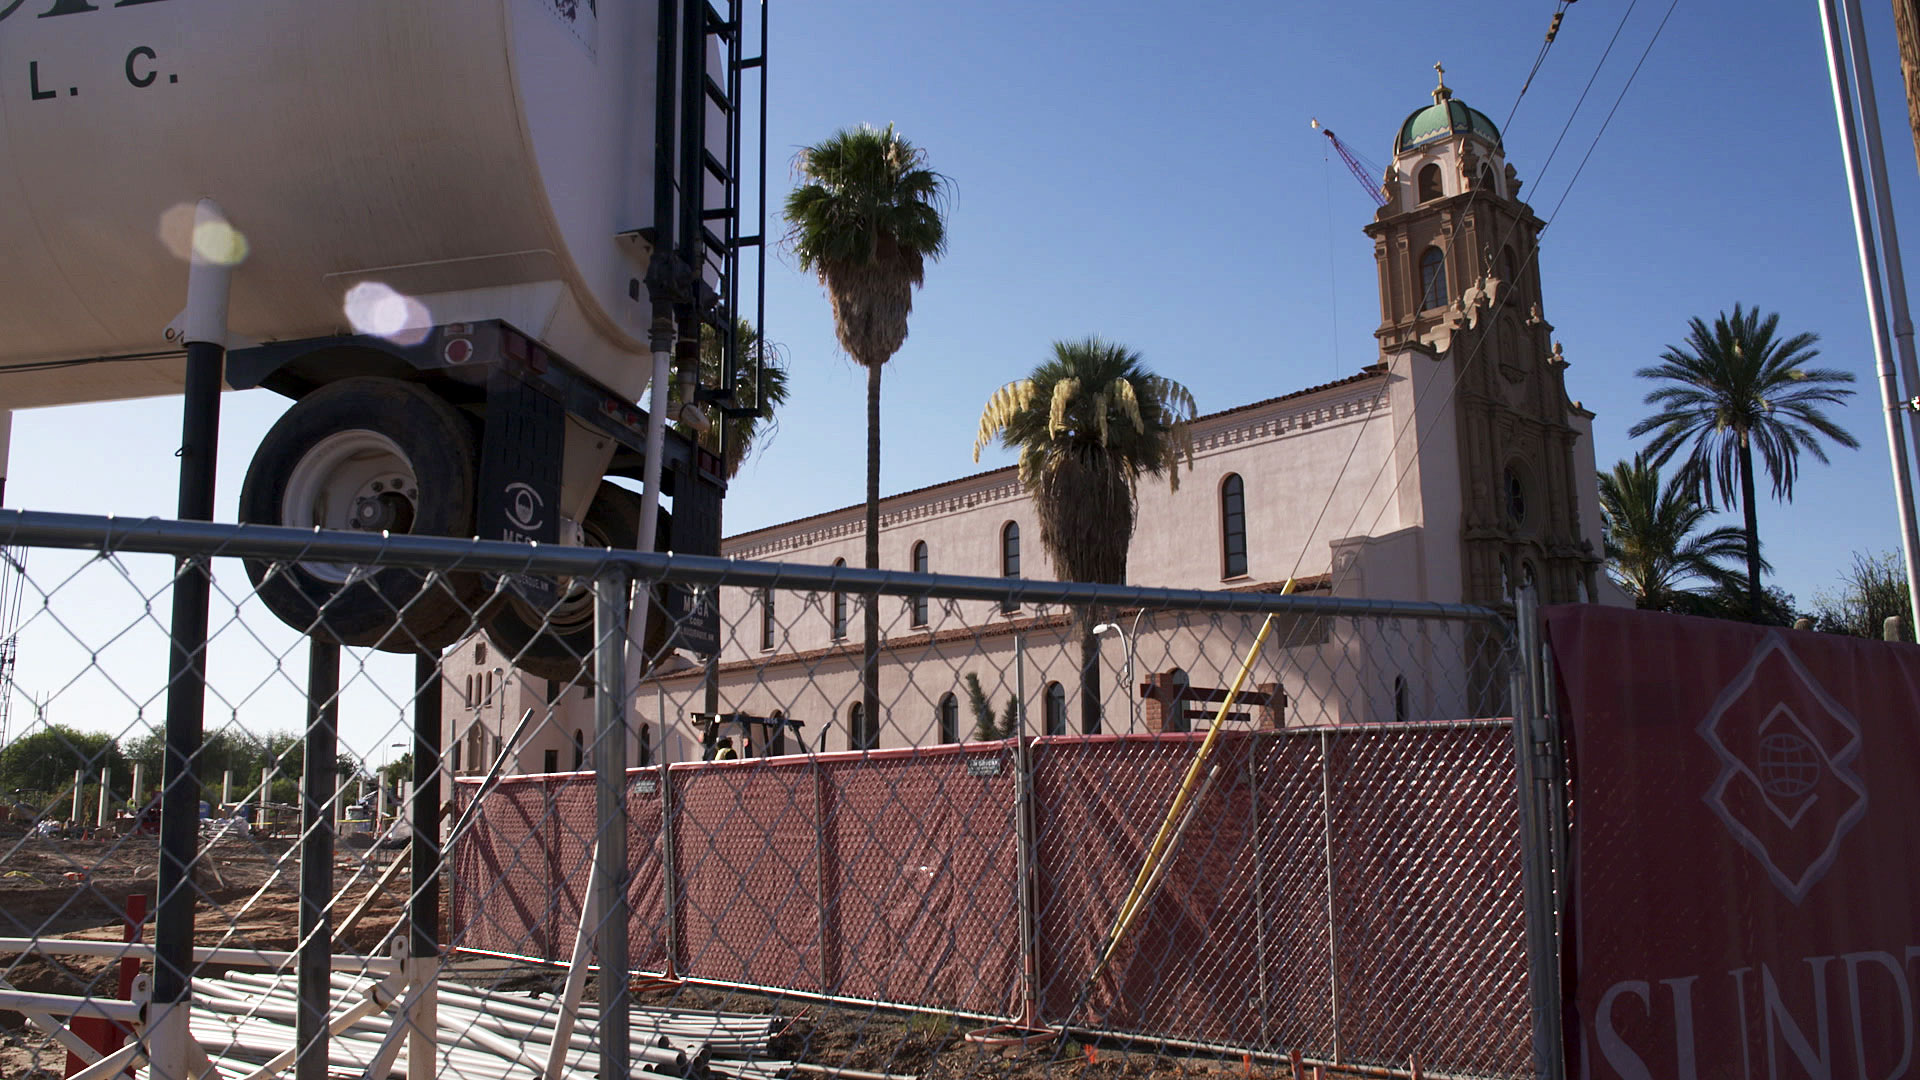 A construction site at Tucson's historic Benedictine Monastery on June 11, 2020.